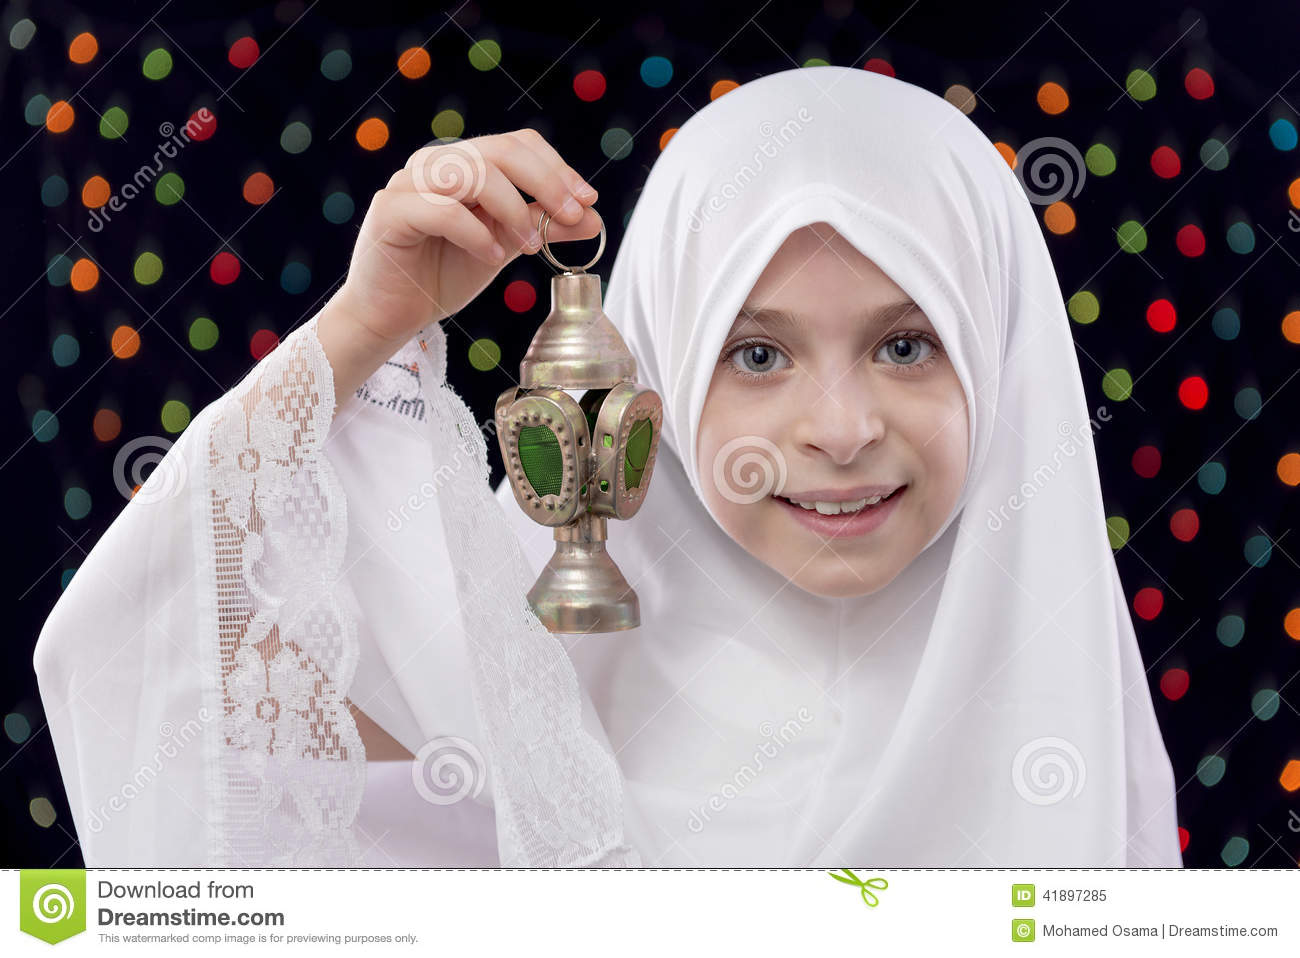 mooringsport muslim girl personals International muslim matrimonials - trusted by over 45 million muslims muslima is part of the well-established cupid media network that operates over 30 reputable niche.